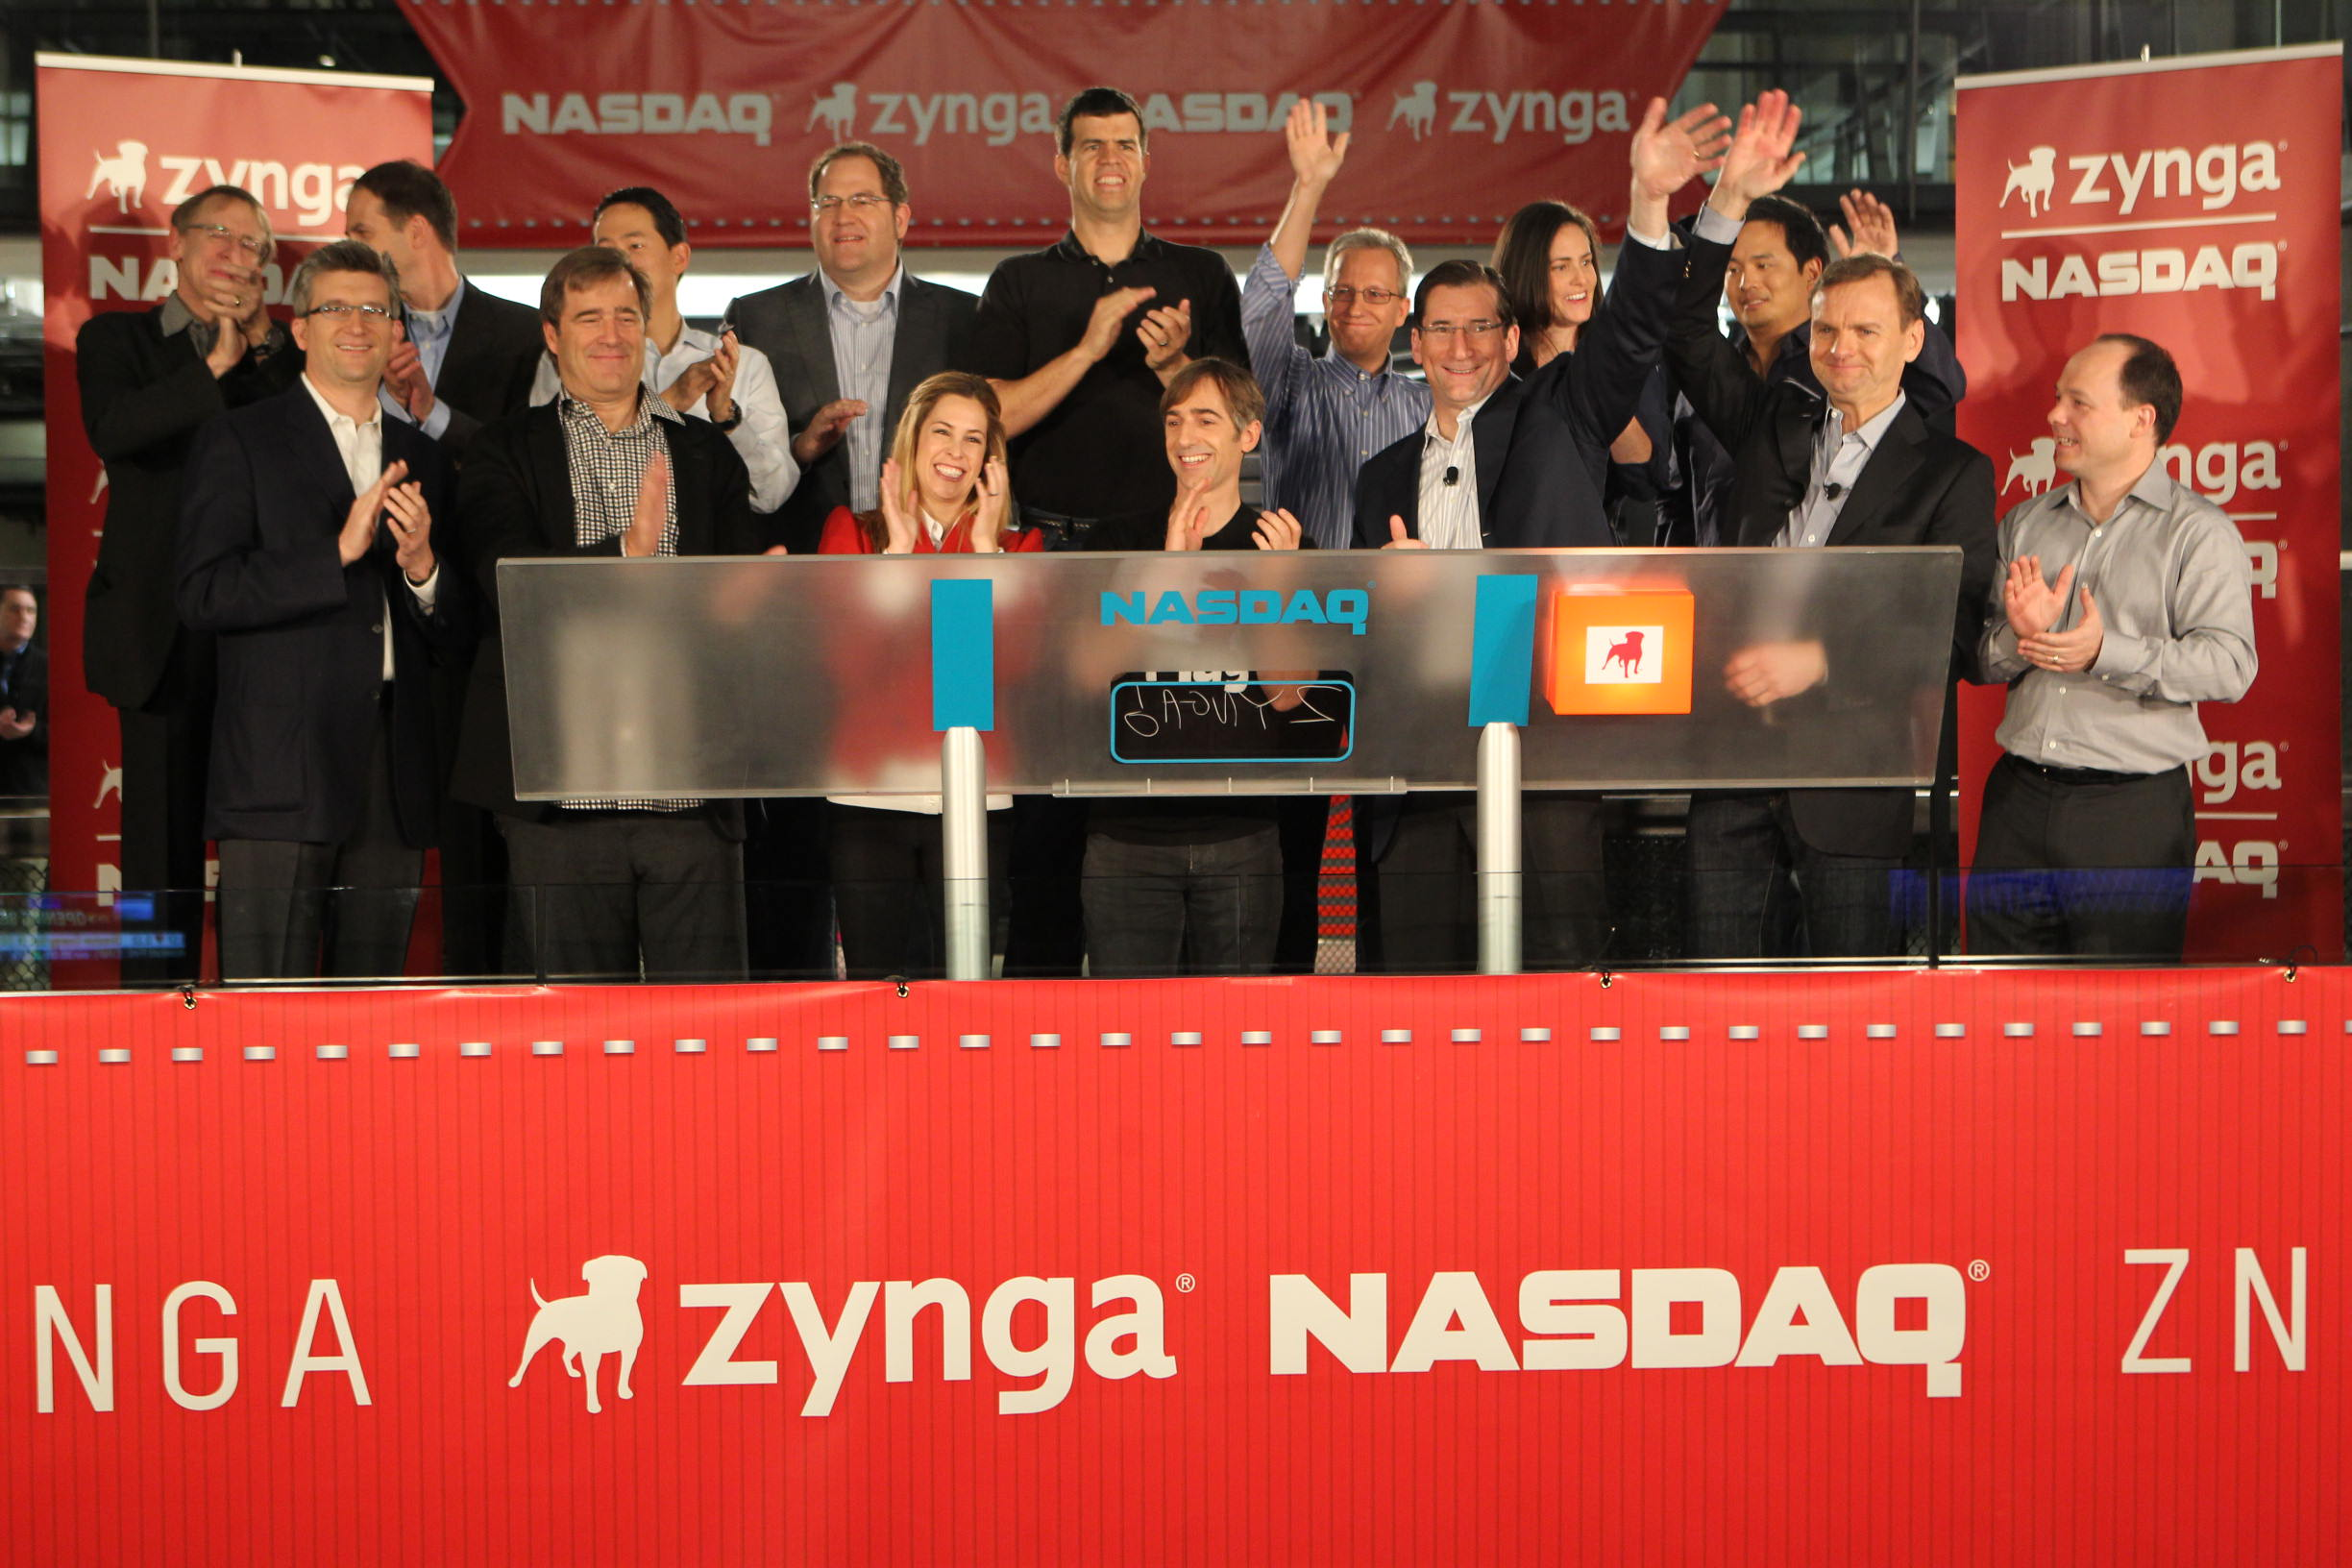 Zynga executives and investors ringing the NASDAQ opening bell